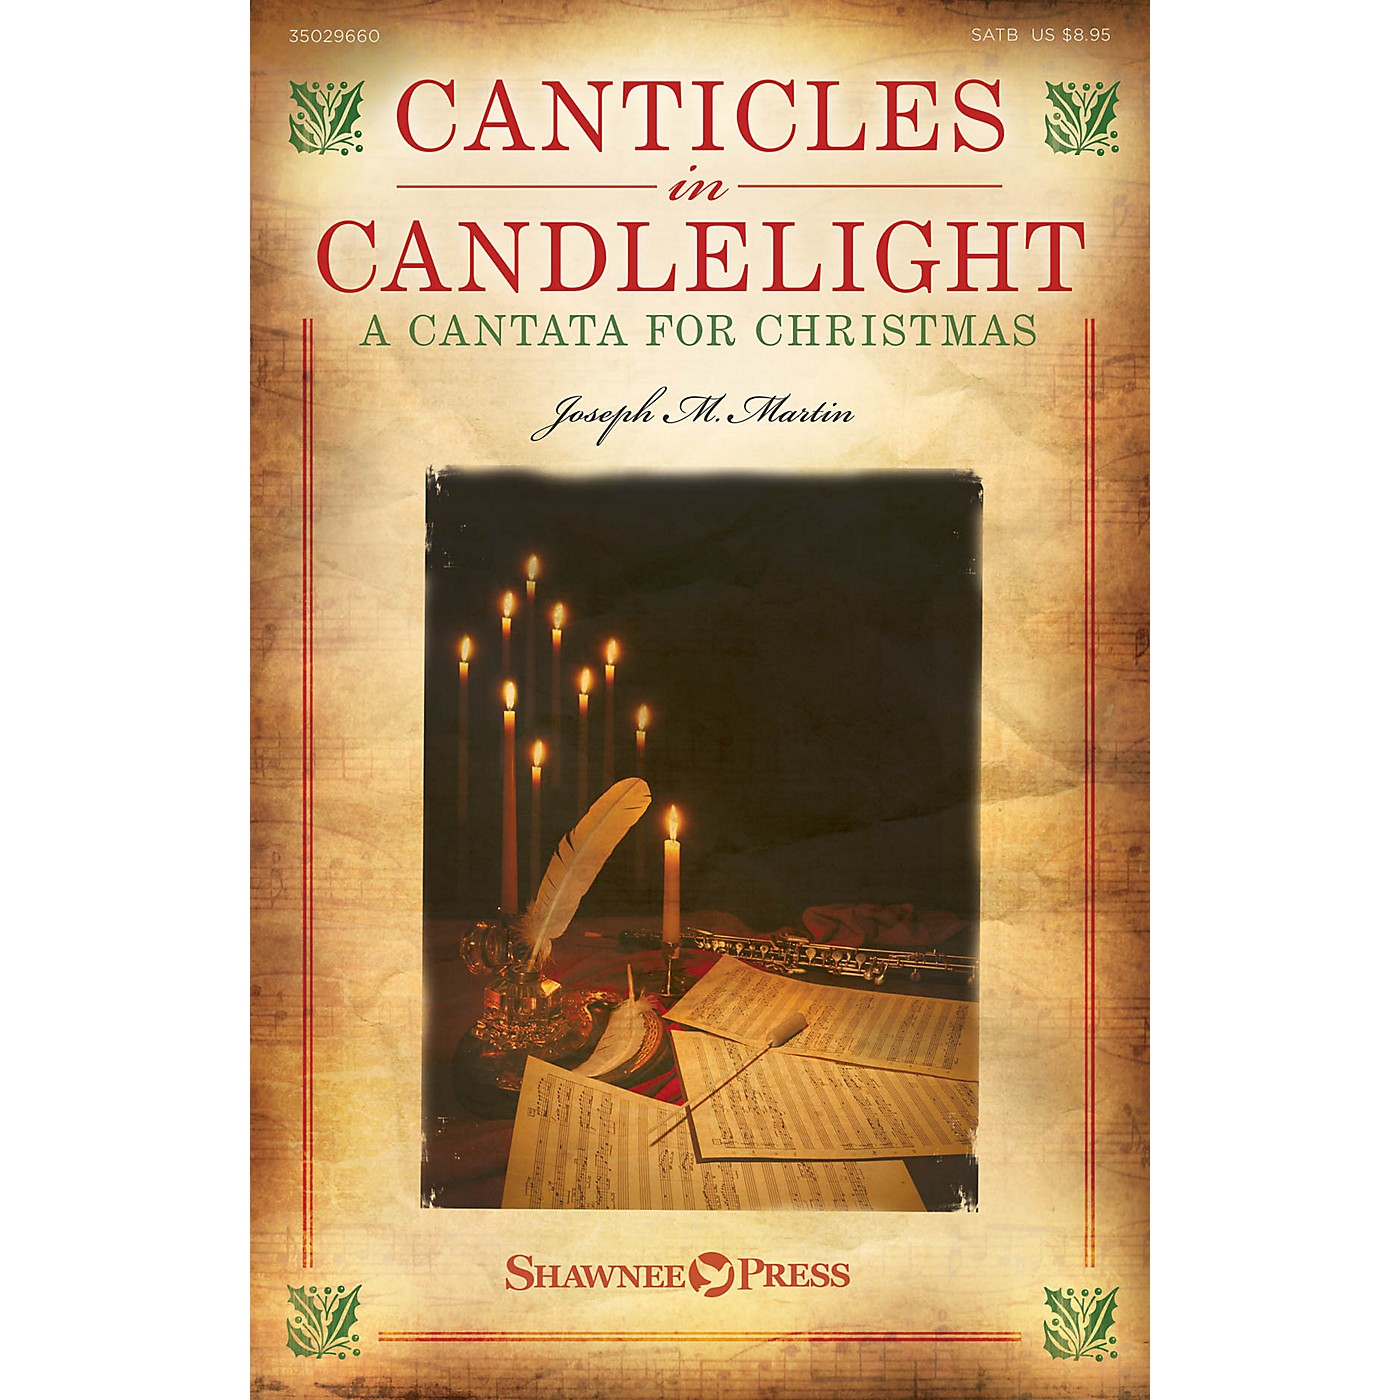 Shawnee Press Canticles in Candlelight (A Cantata for Christmas) SATB composed by Joseph M. Martin thumbnail